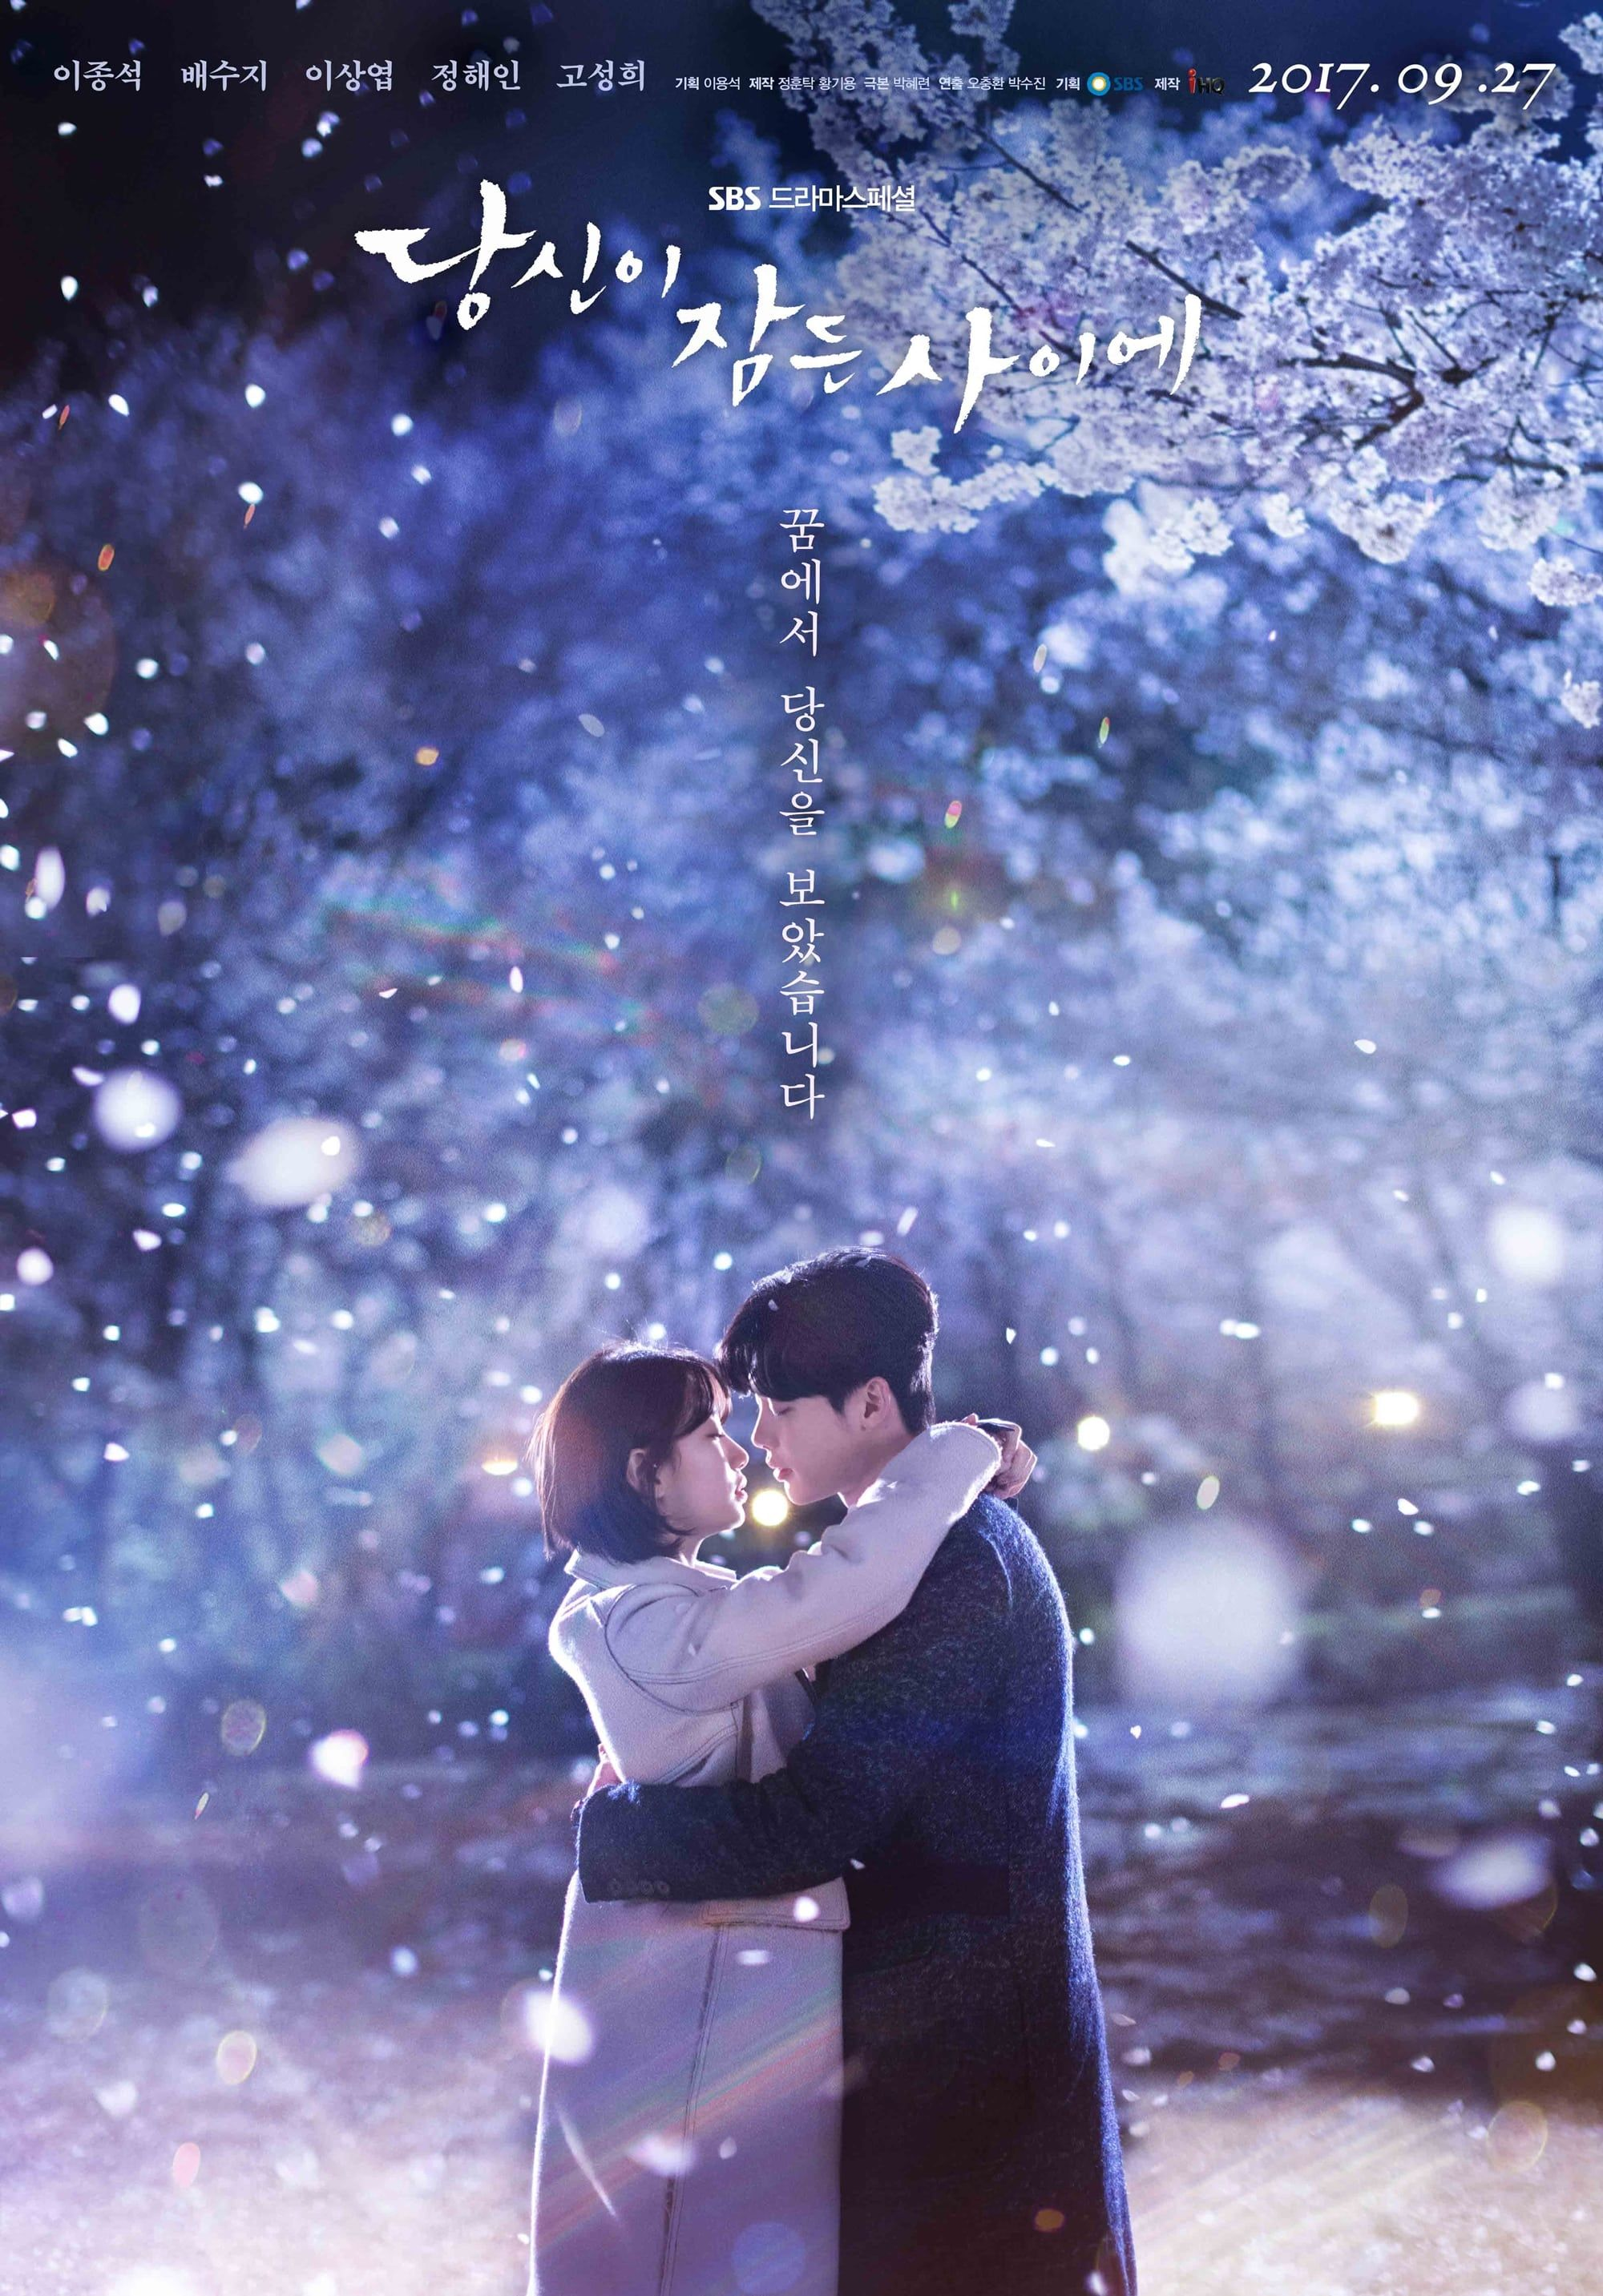 Resultado de imagen para WHILE YOU WERE SLEEPING DRAMA POSTER